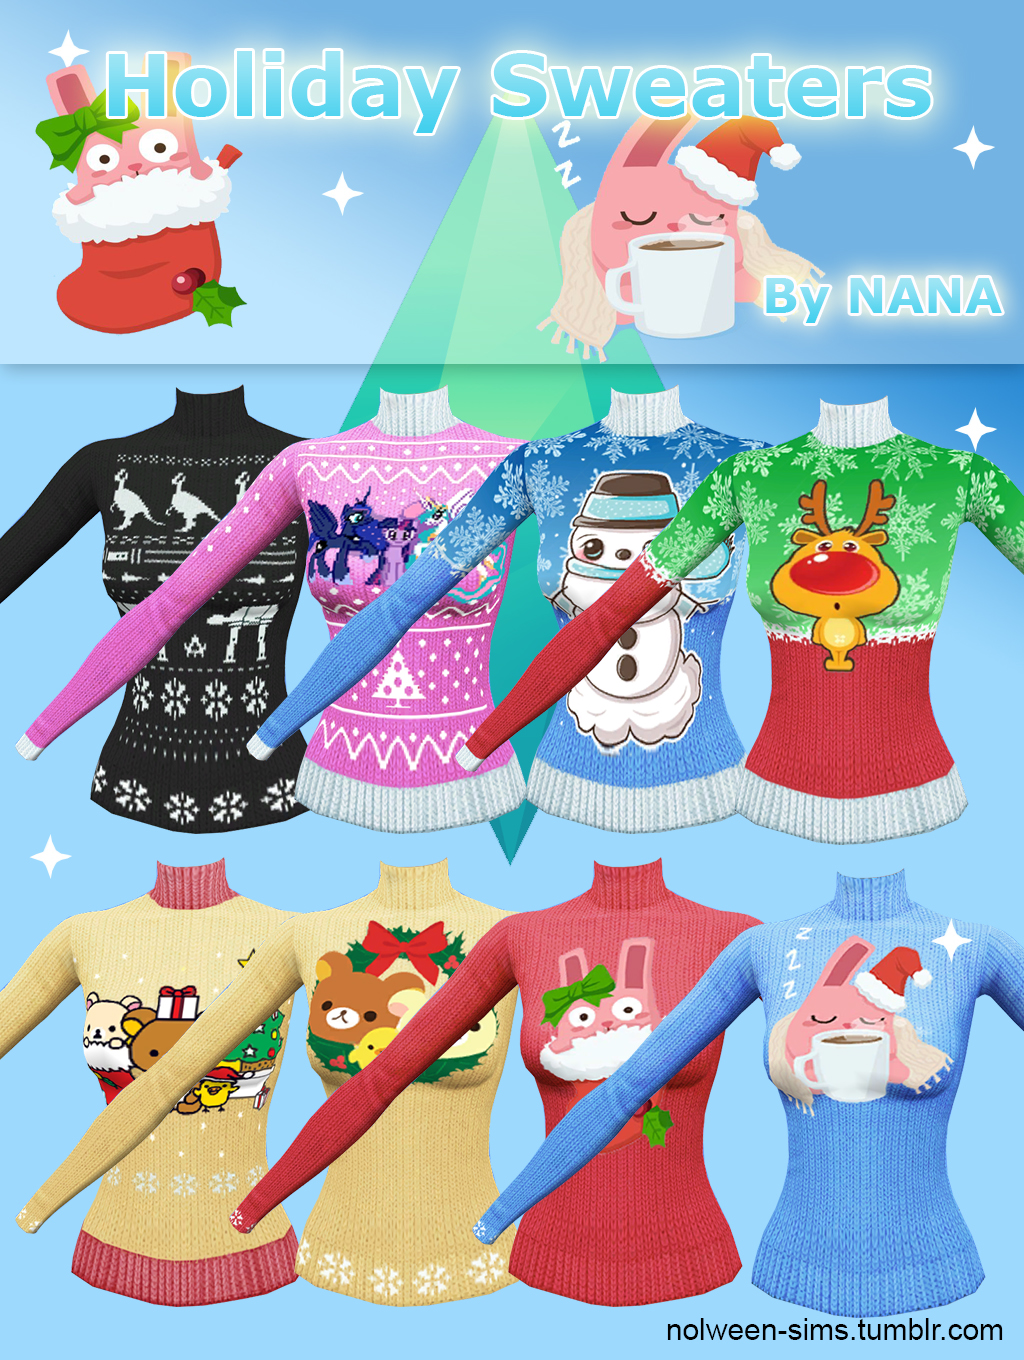 Holiday Sweaters for Females by Nana